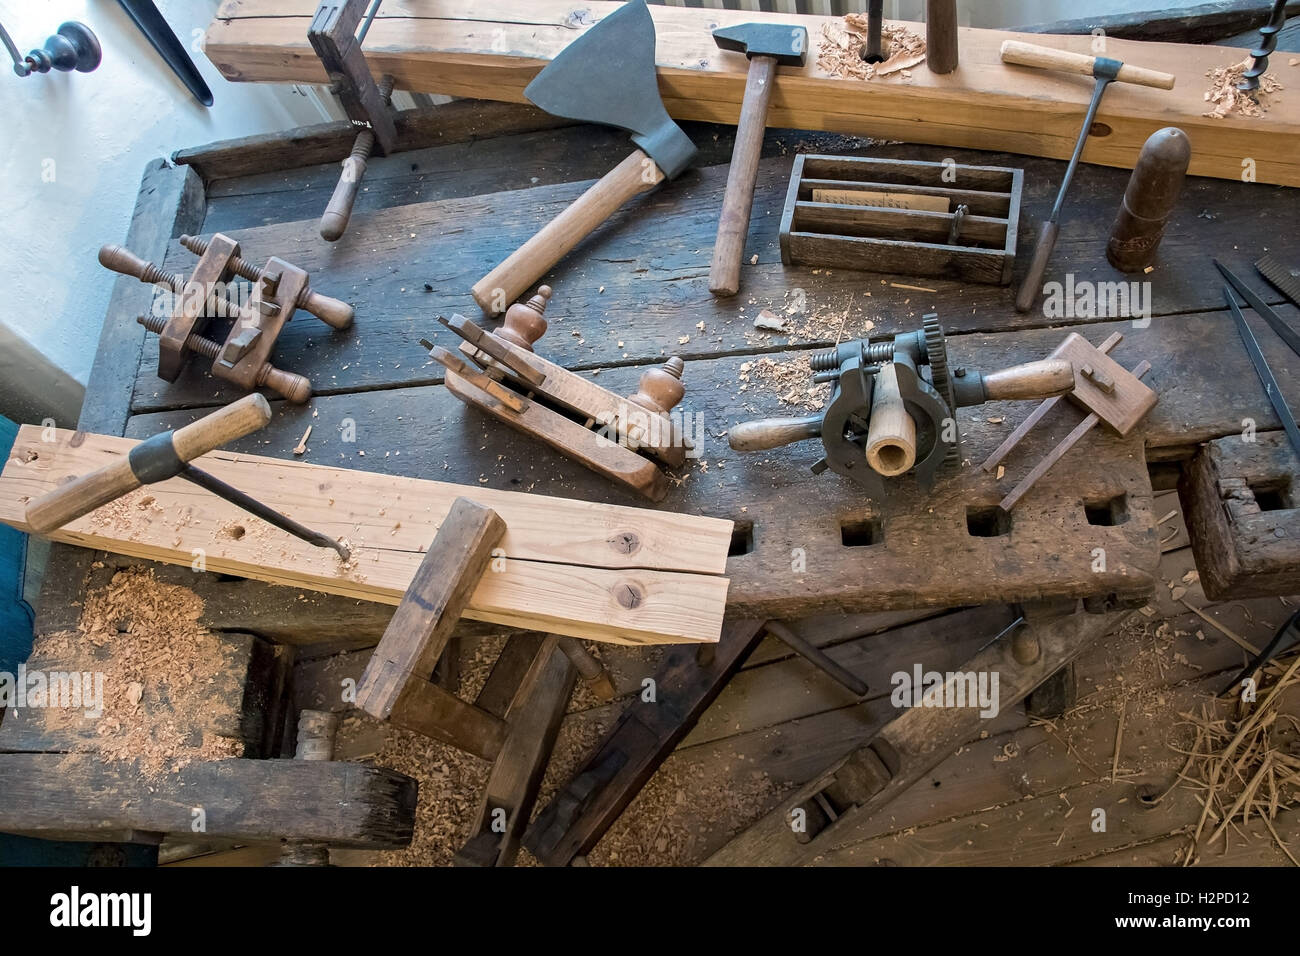 Old carpentry workshop with obsolete tools used Vintage